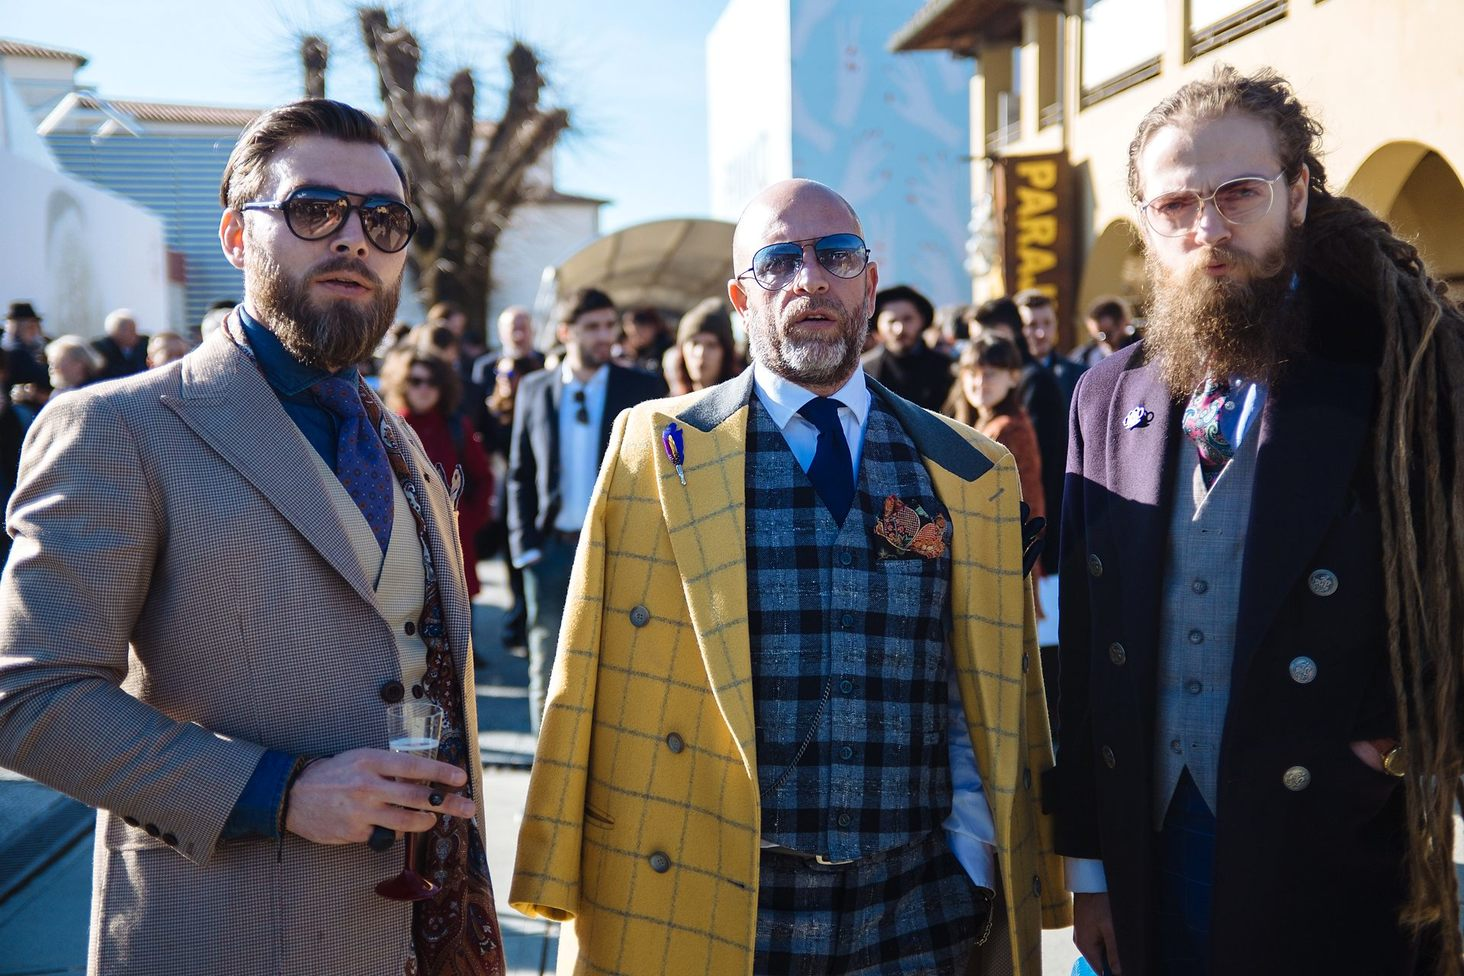 Firenze-89-Pitti-Uomo-Fashion-Photography-22